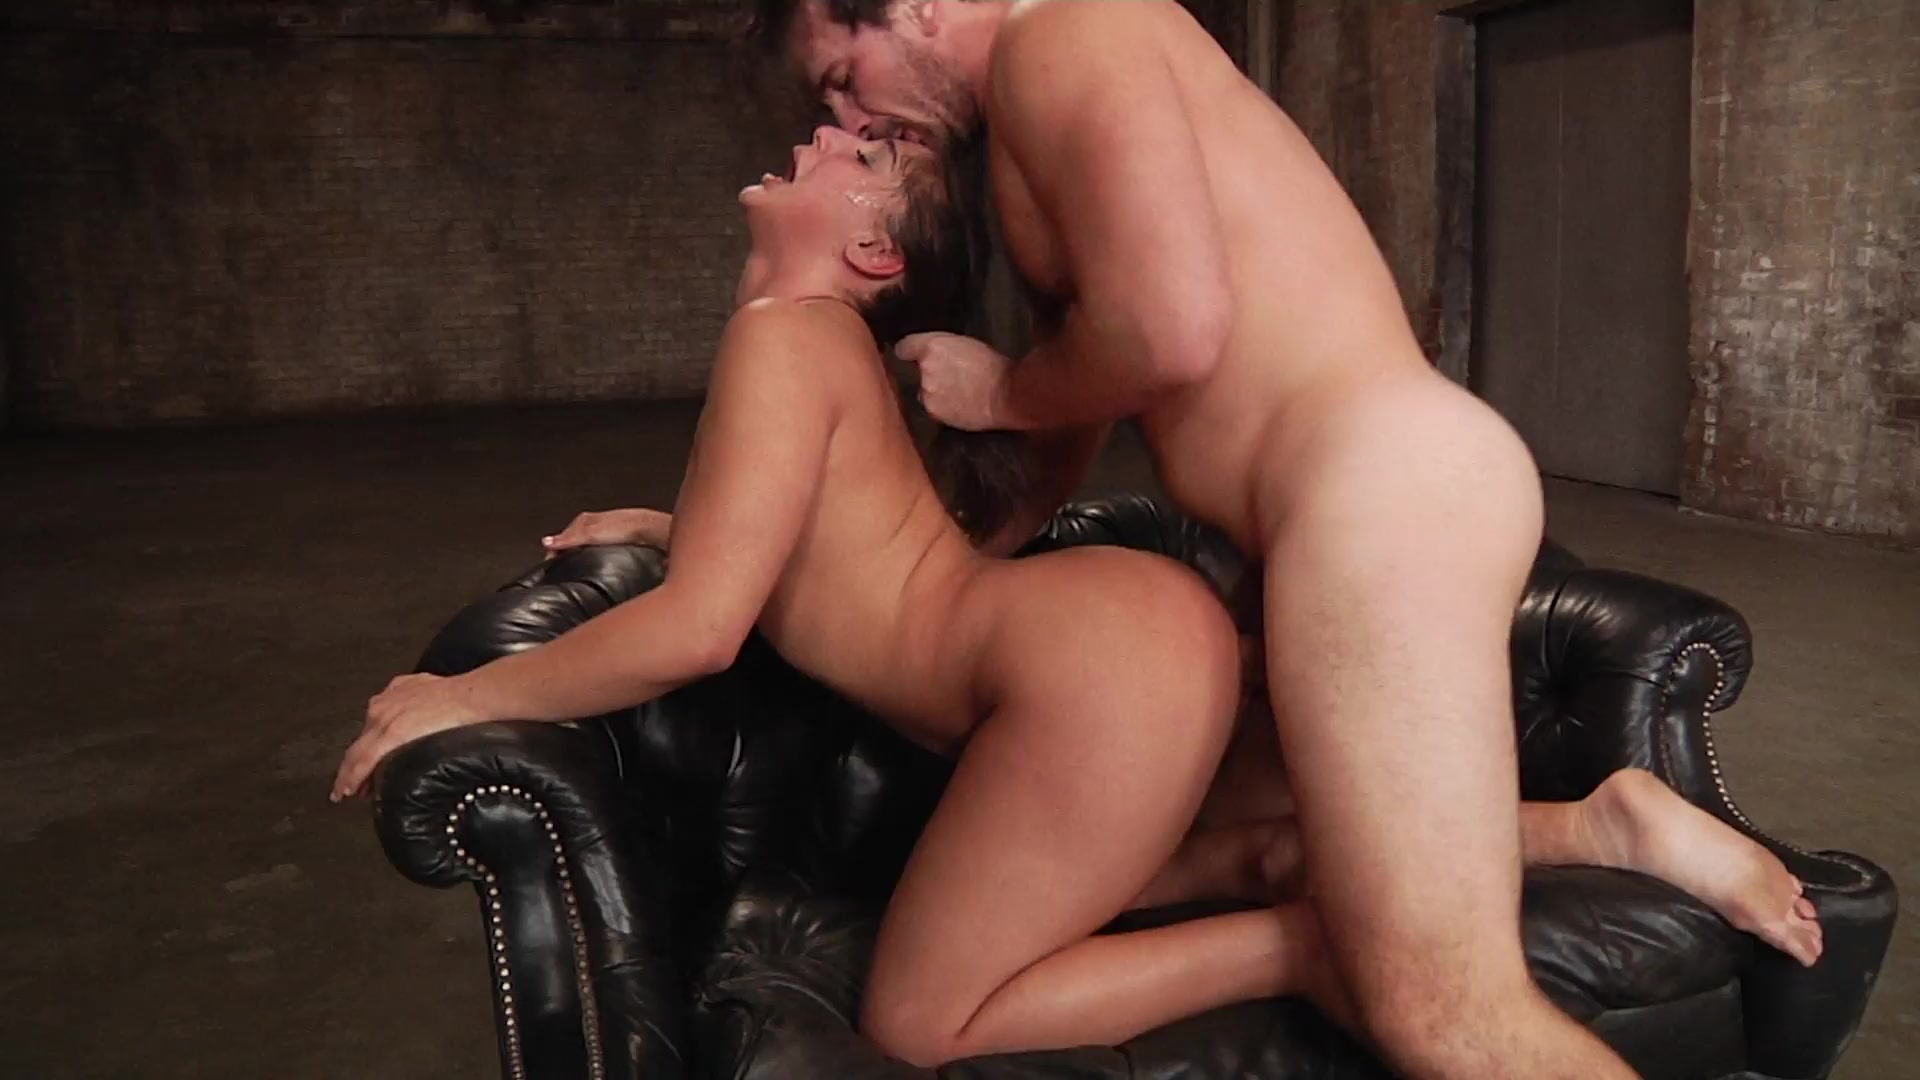 Scene with Abella Danger - image 15 out of 20